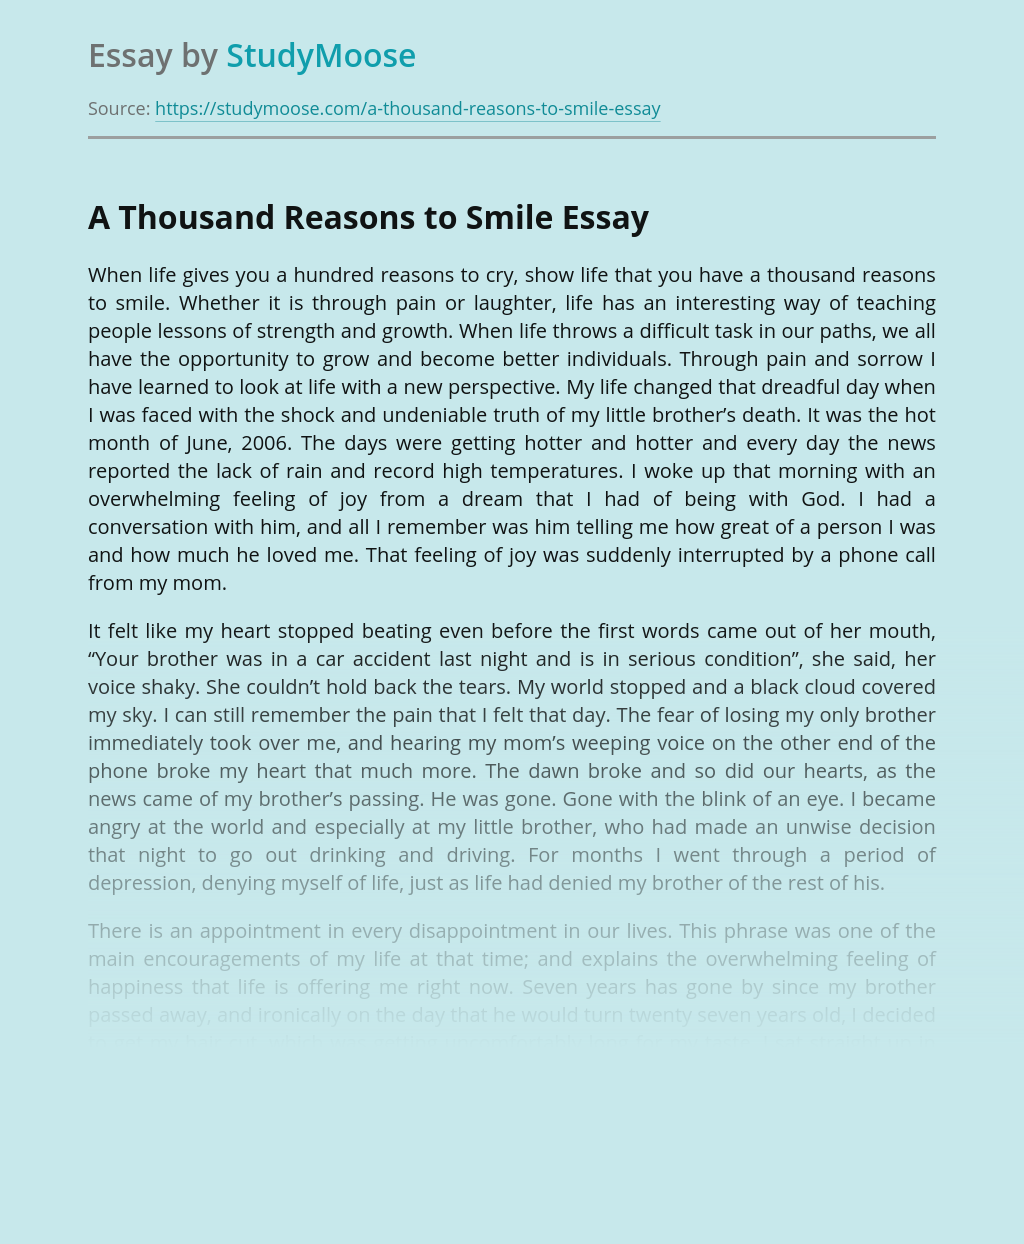 A Thousand Reasons to Smile